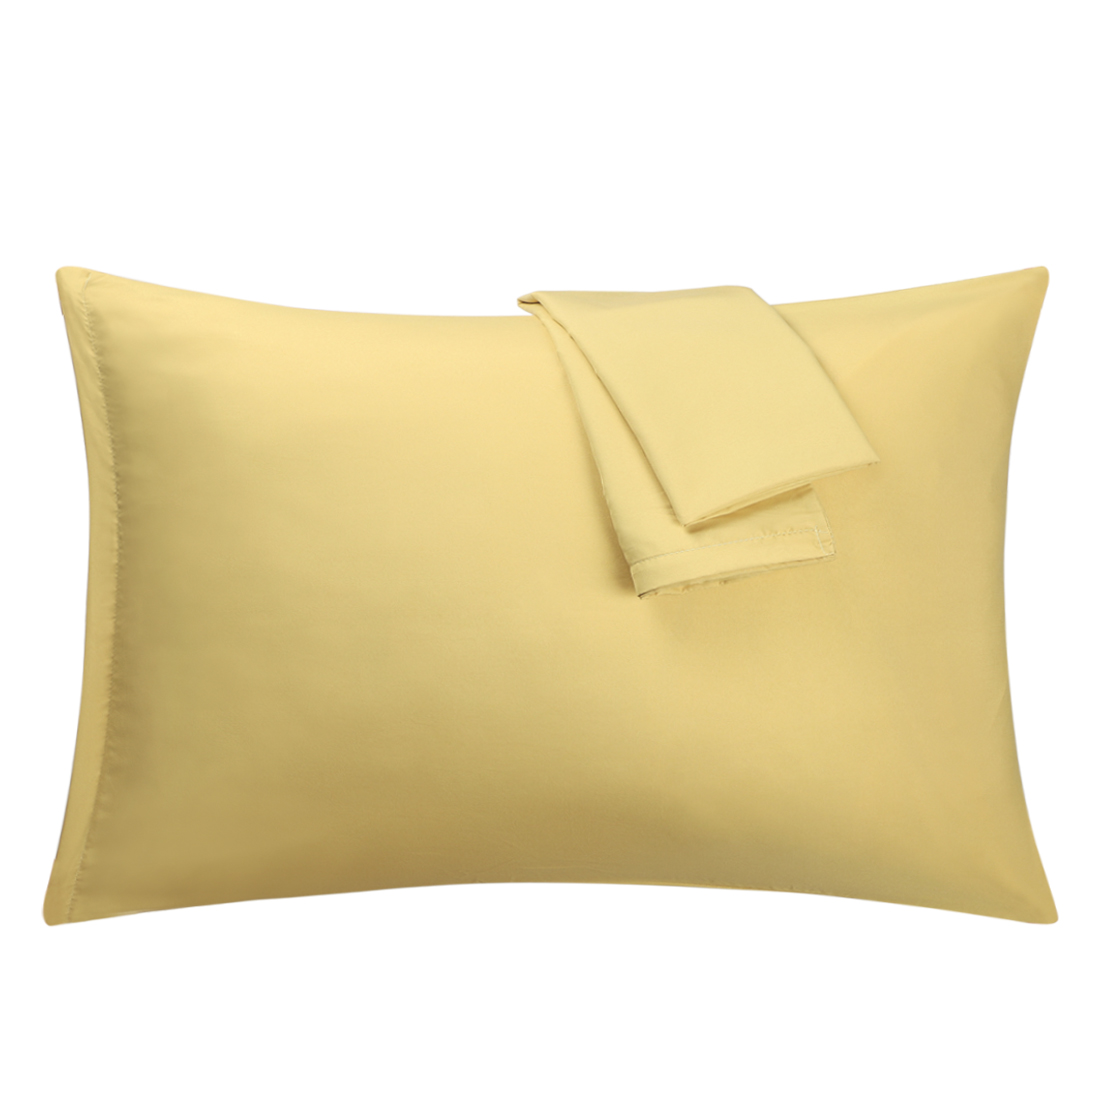 Gold Pillowcases Soft Microfiber Pillow Case Cover with Zipper Standard, 2 Pack